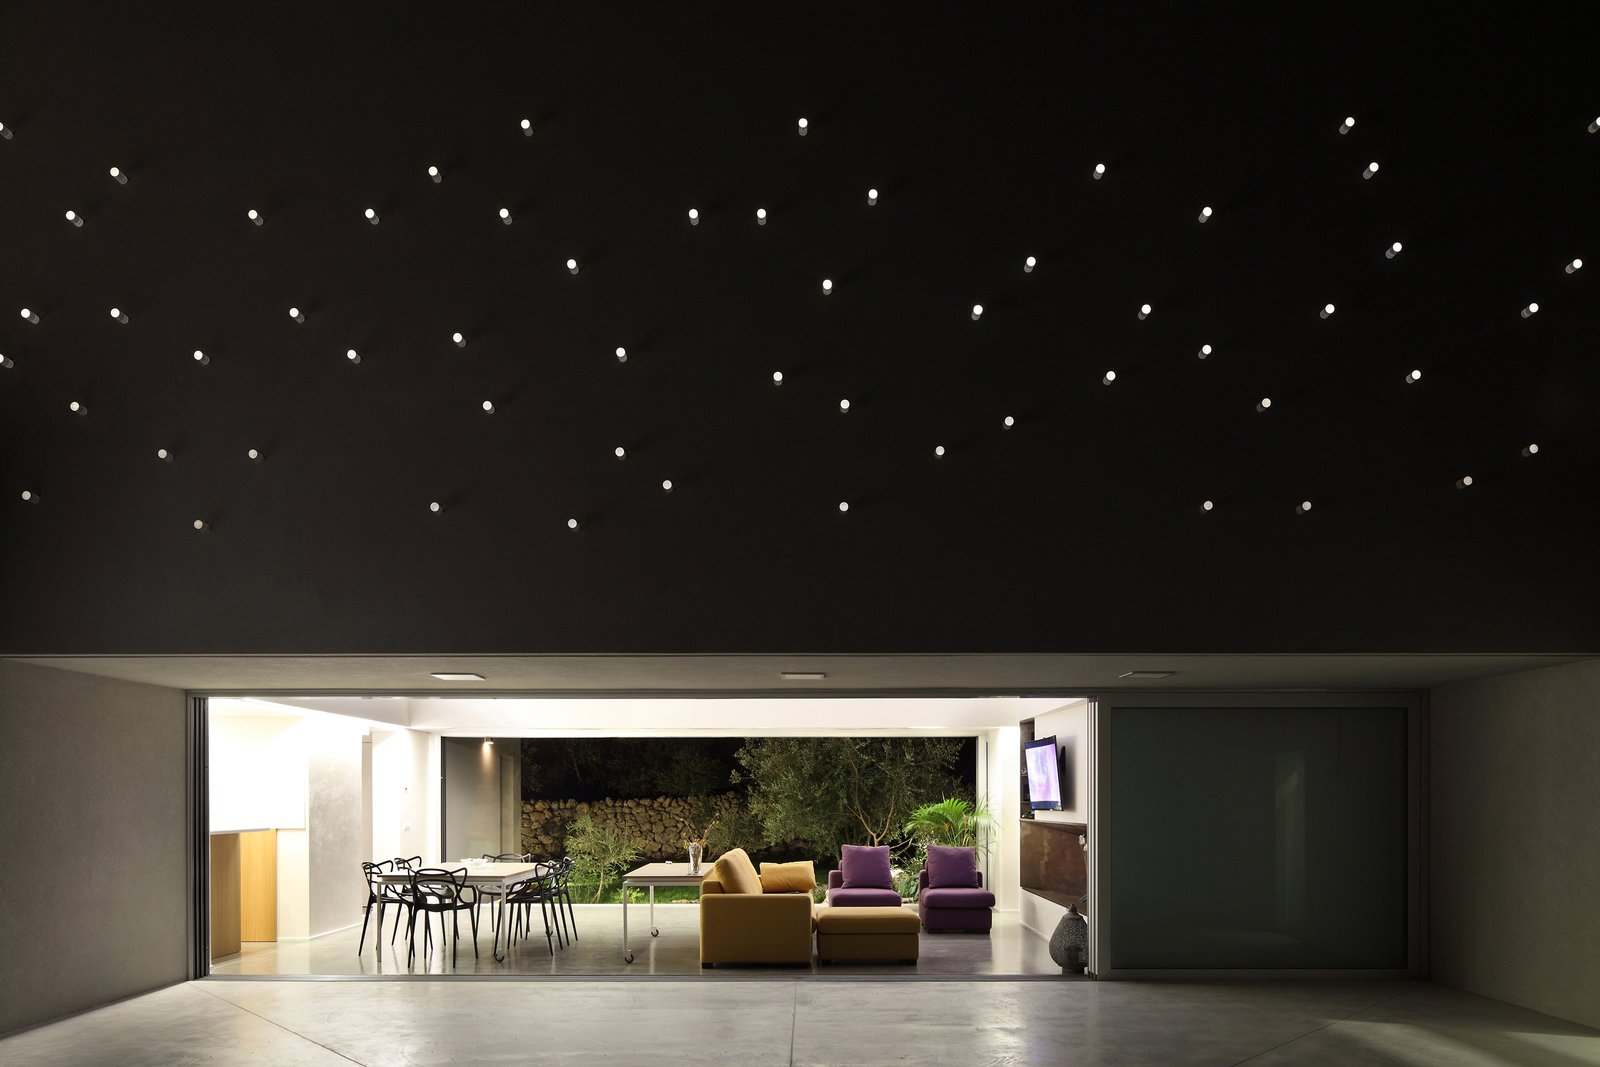 The plexiglass tube's reverse lighting scheme emulates a starry sky above the patio when the interior is lit up at night. Tagged: Exterior, House, and Concrete Siding Material.  A Home That Dramatically Replicates a Starry Sky in Its Living Room by Caroline Wallis